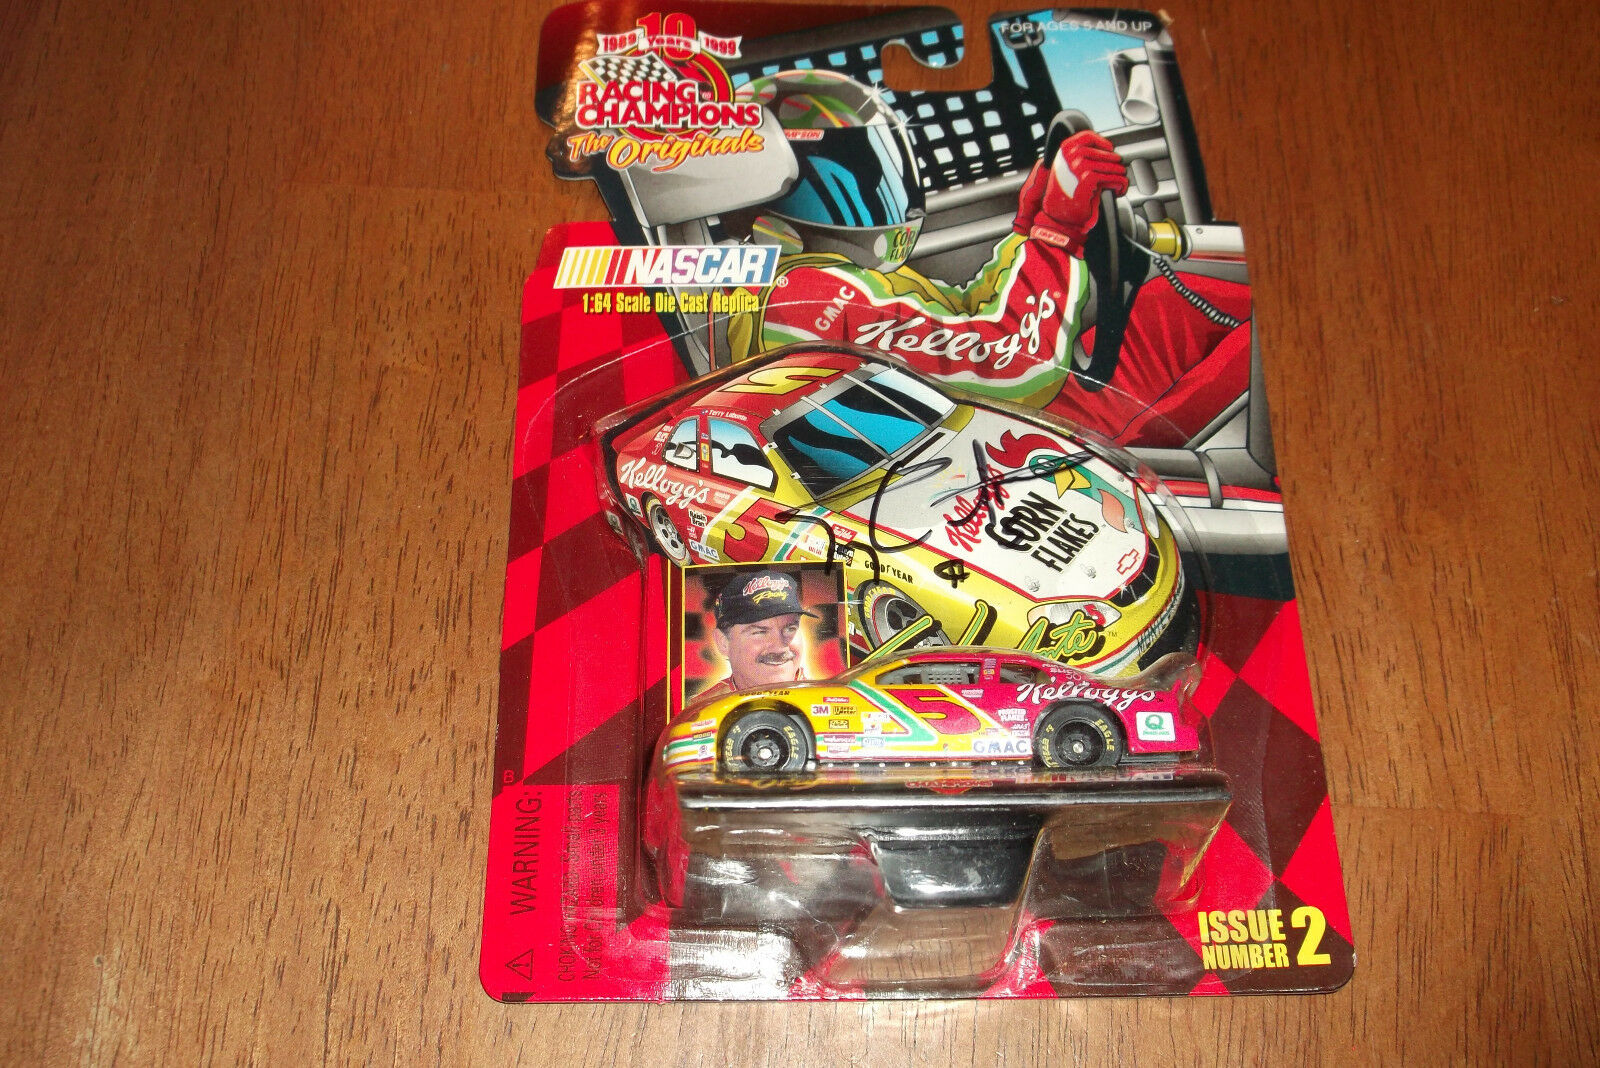 TERRY LaBONTE KELLOGG'S AUTOGRAPHED 1 64 SCALE RACING CHAMPIONS (58)